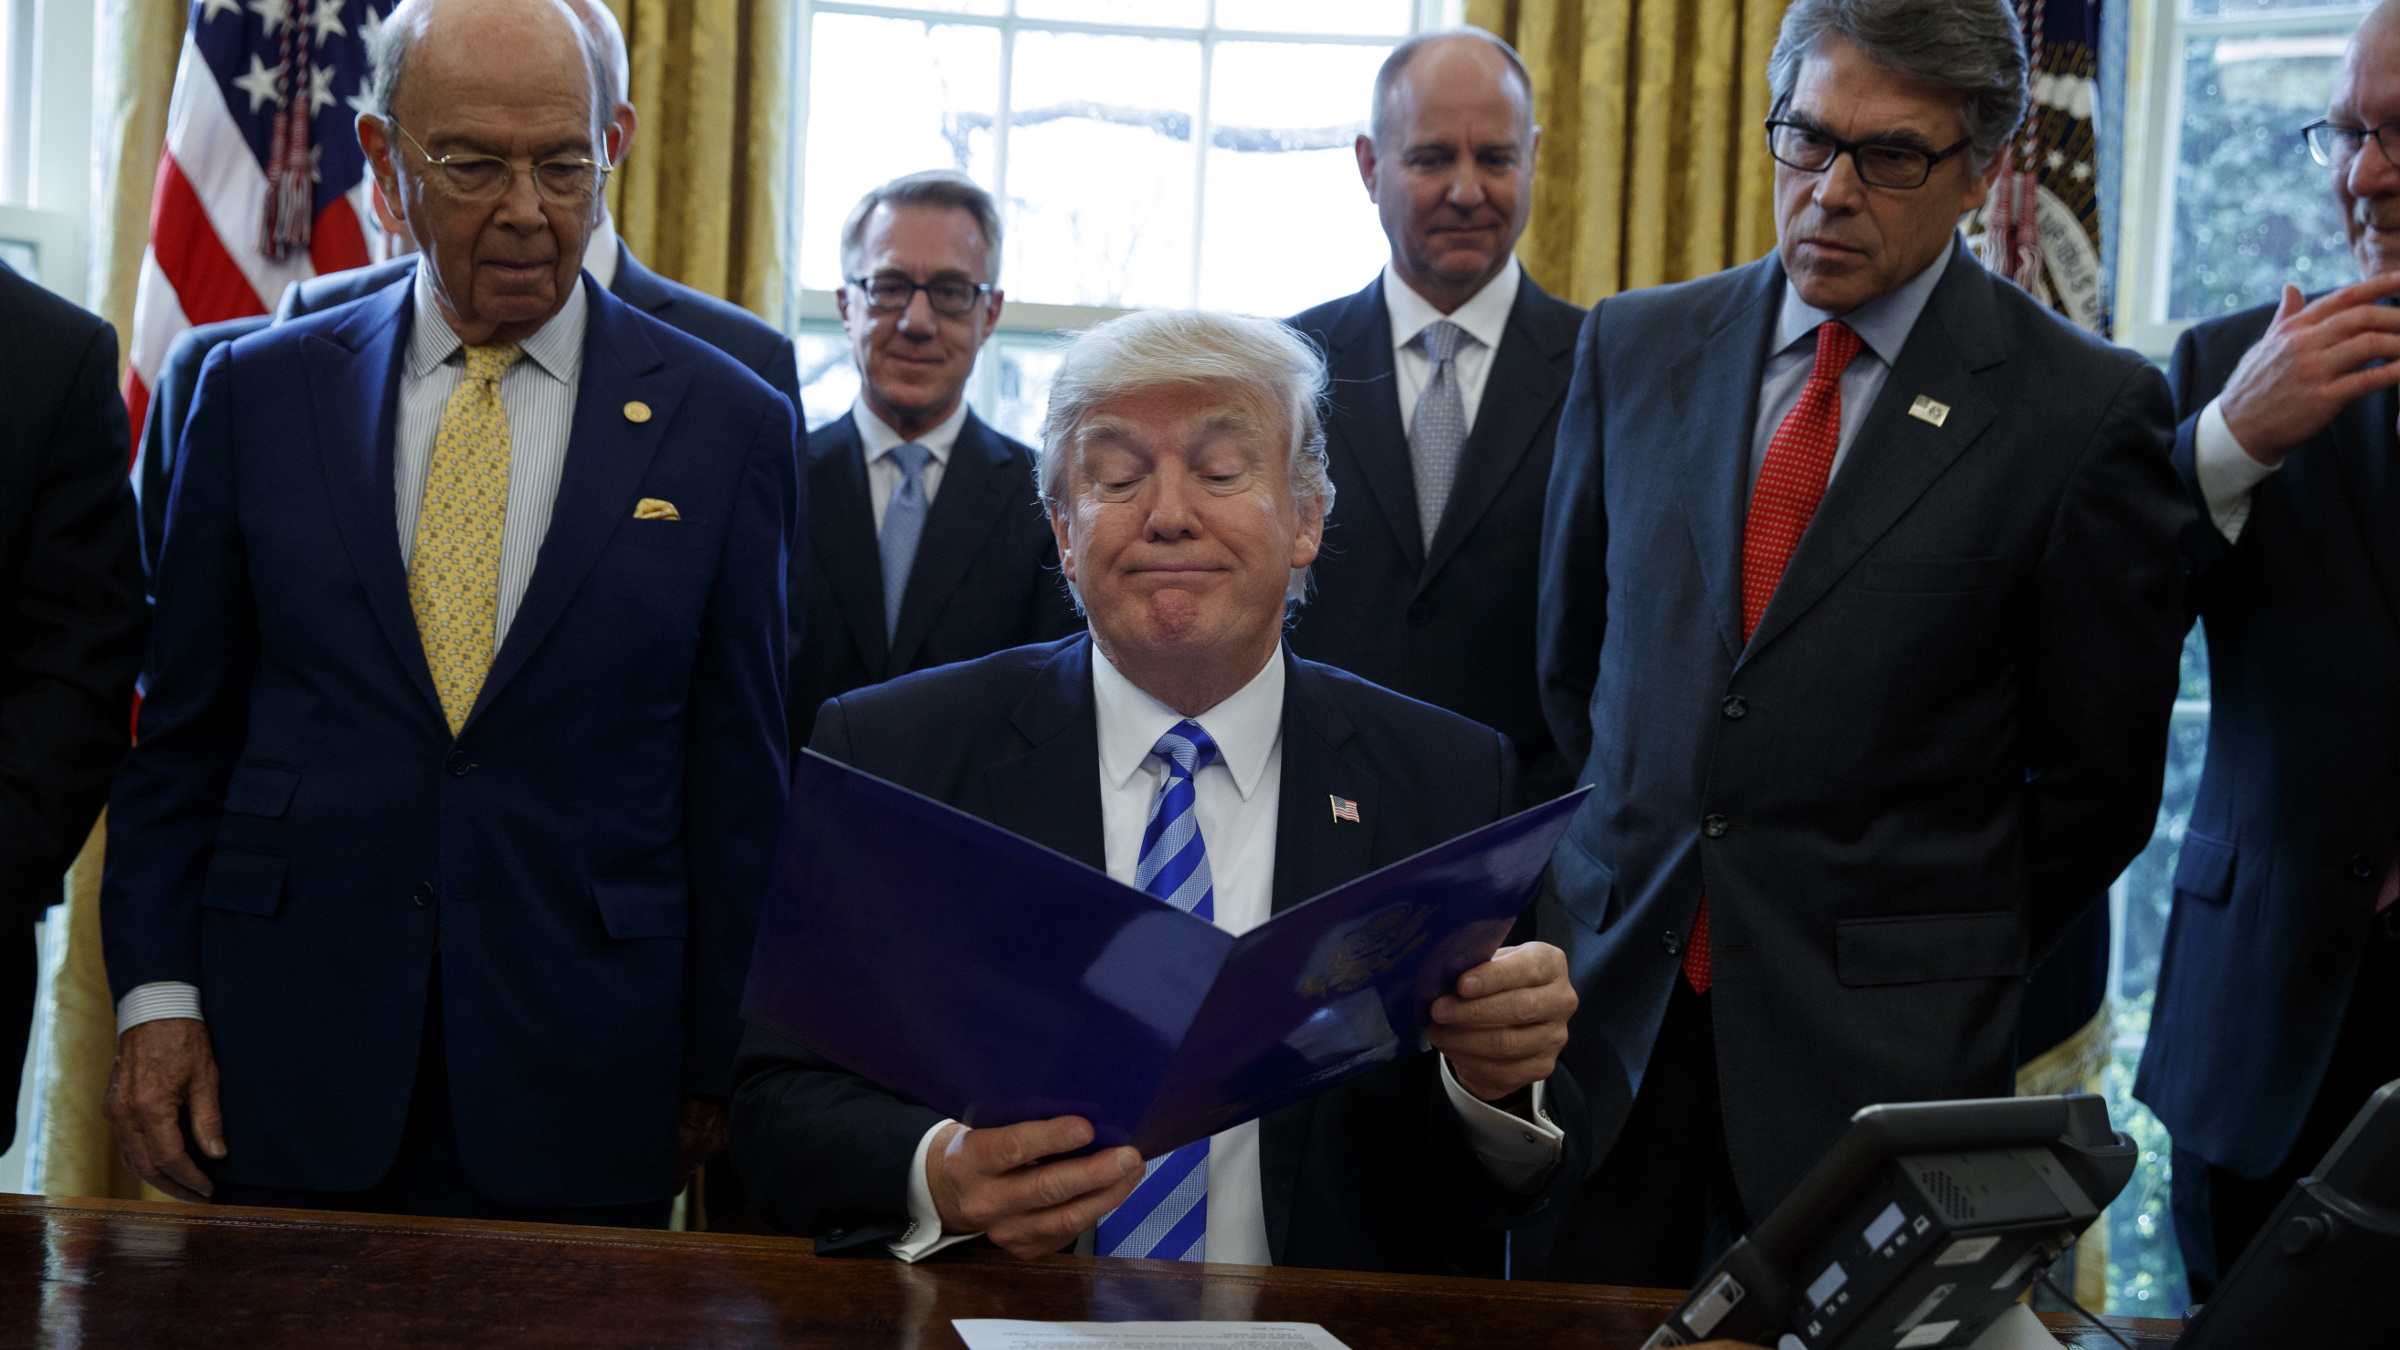 President Donald Trump announces the approval of a permit Friday to build the Keystone XL pipeline, clearing the way for the $8 billion project, in the Oval Office of the White House, Friday, March 24, 2017, in Washington.